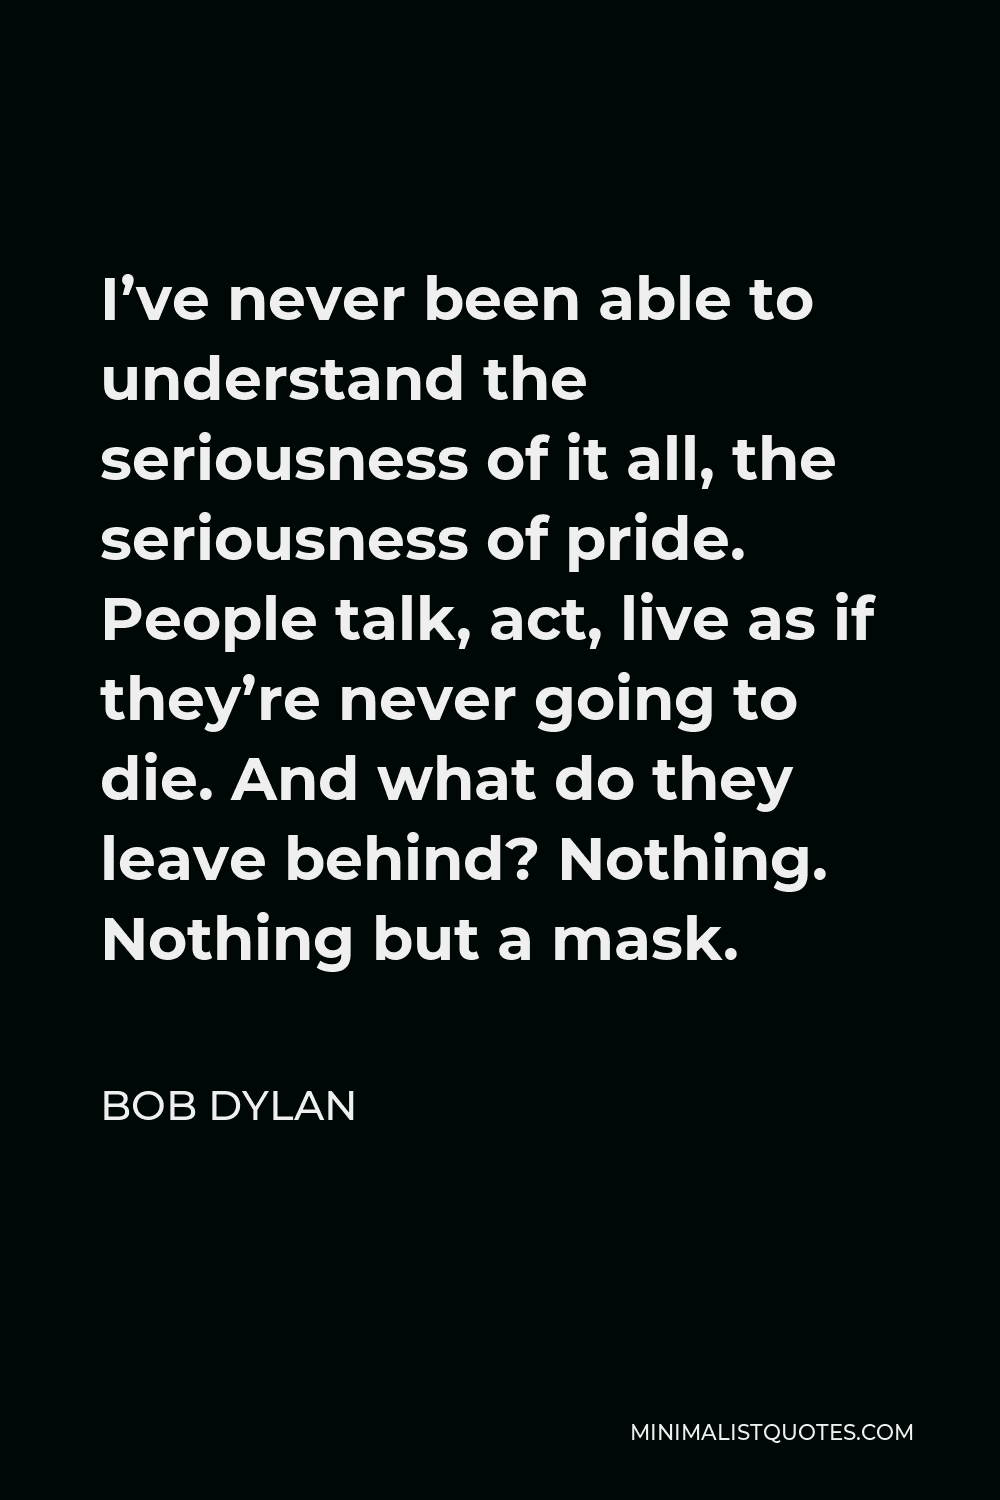 Bob Dylan Quote - I've never been able to understand the seriousness of it all, the seriousness of pride. People talk, act, live as if they're never going to die. And what do they leave behind? Nothing. Nothing but a mask.